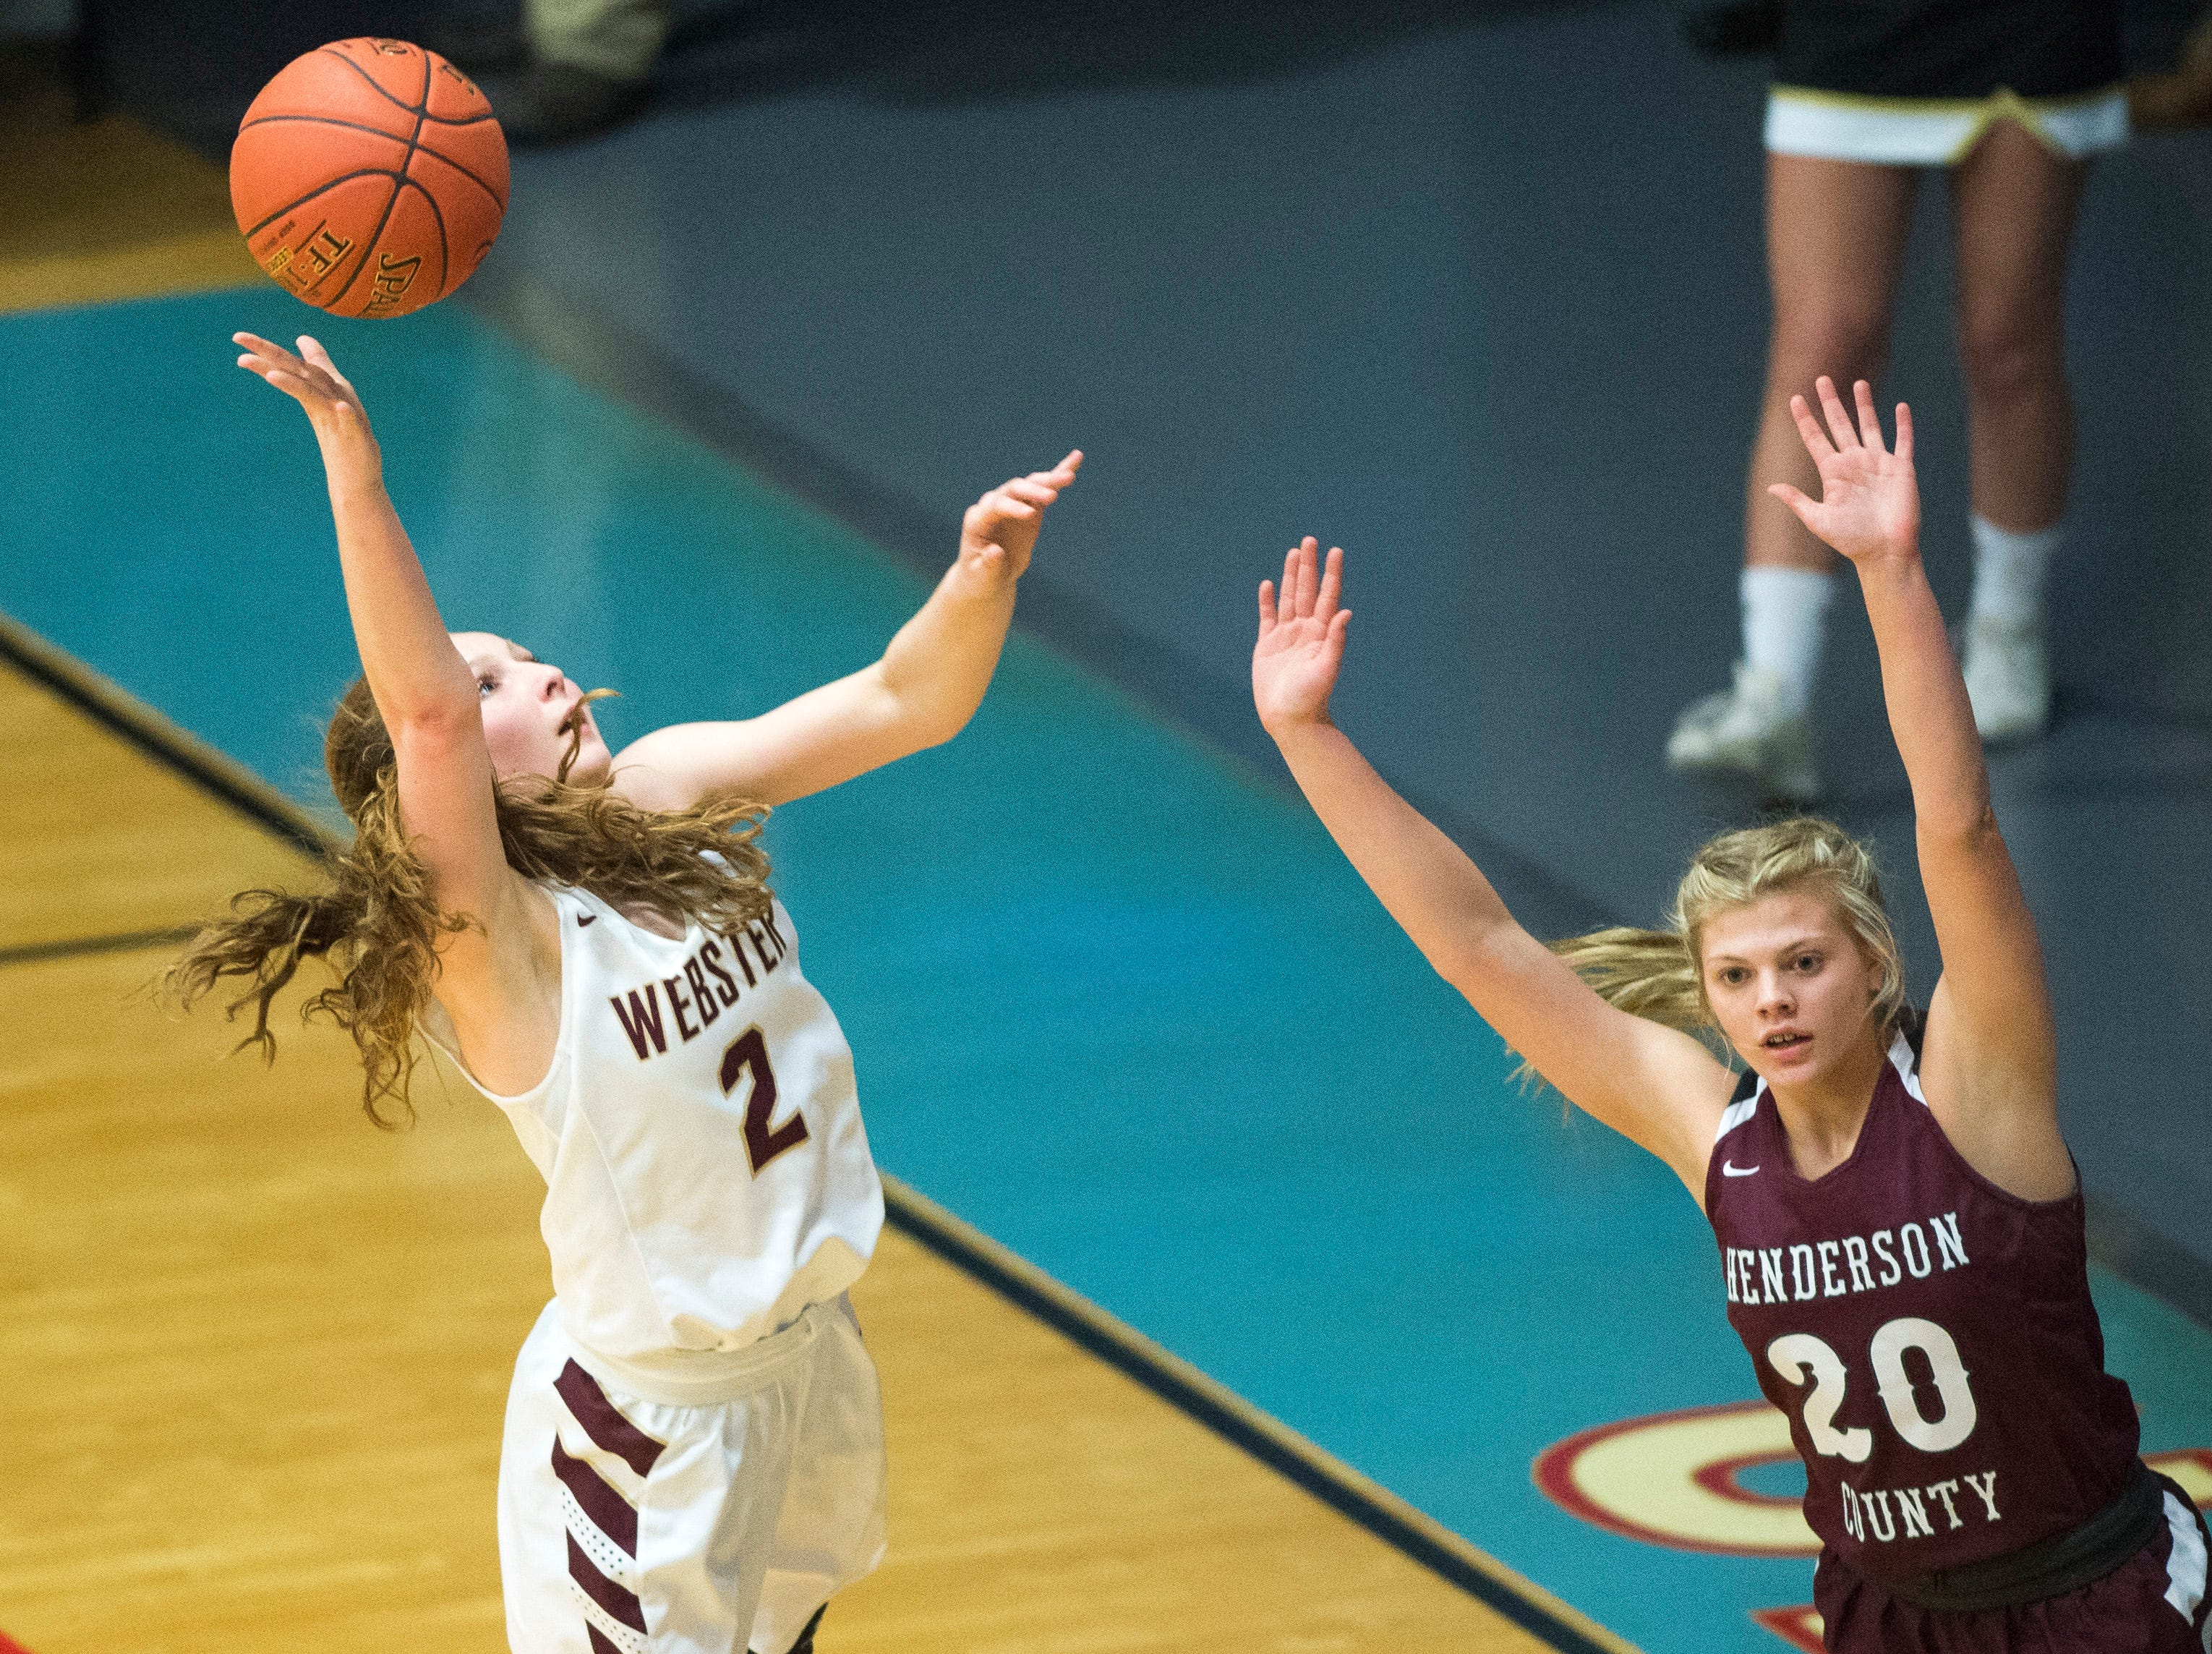 Webster County's Marissa Austin (2) takes a shot during the 2019 Sixth District championship game against the Henderson County Lady Colonels at Union County High School Thursday, Feb. 21, 2019.